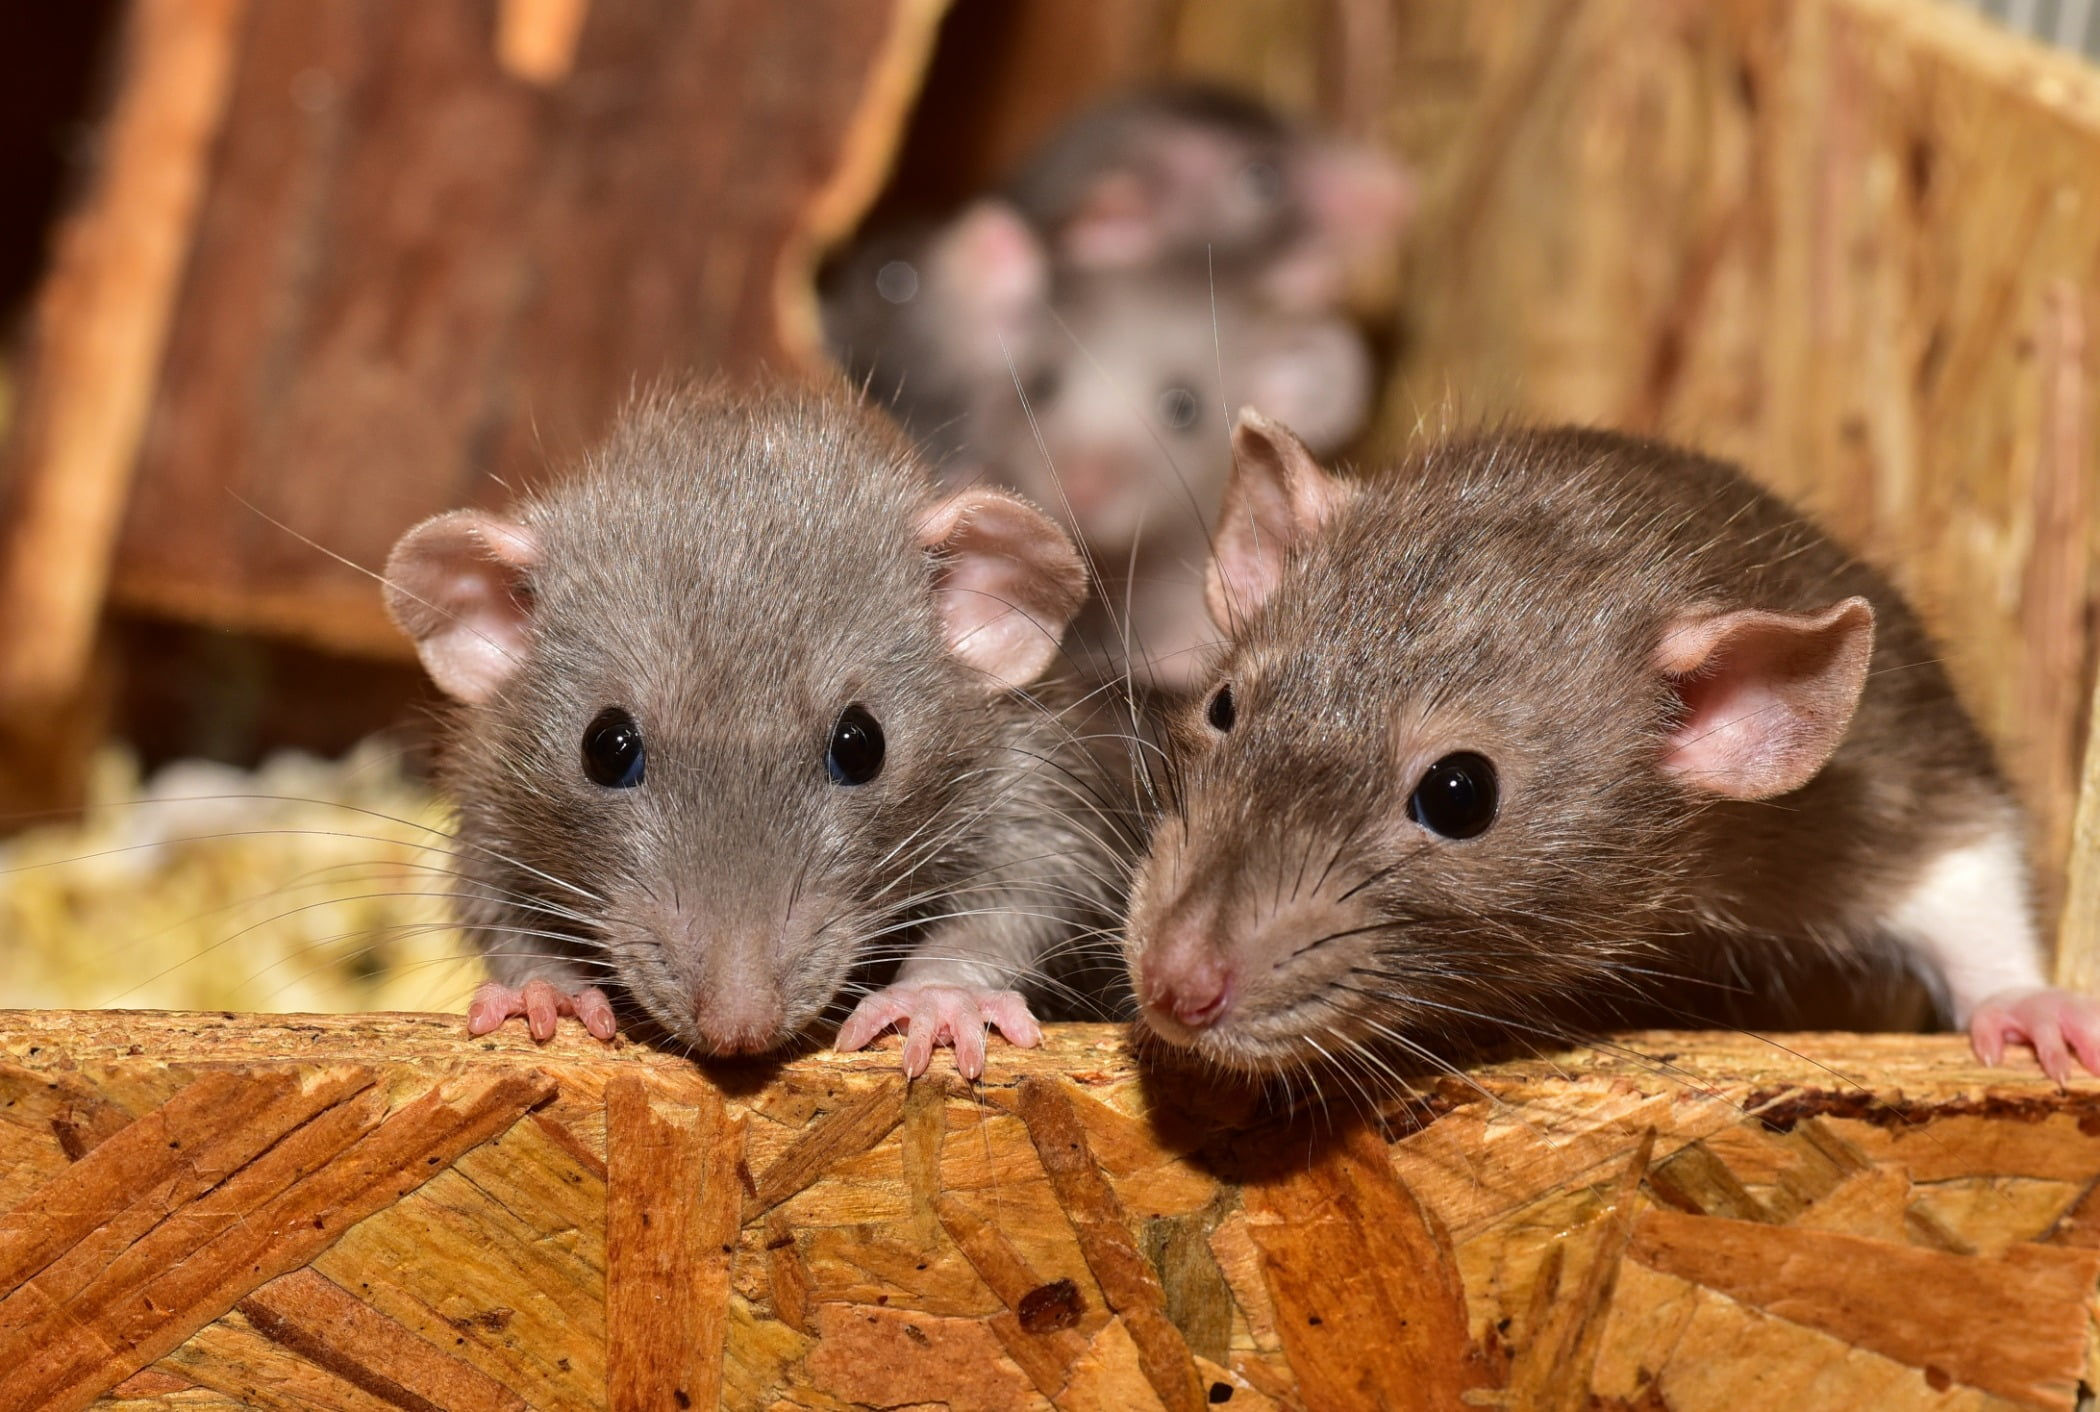 white footed mice, Eye, Rat, Fawn, Rodent